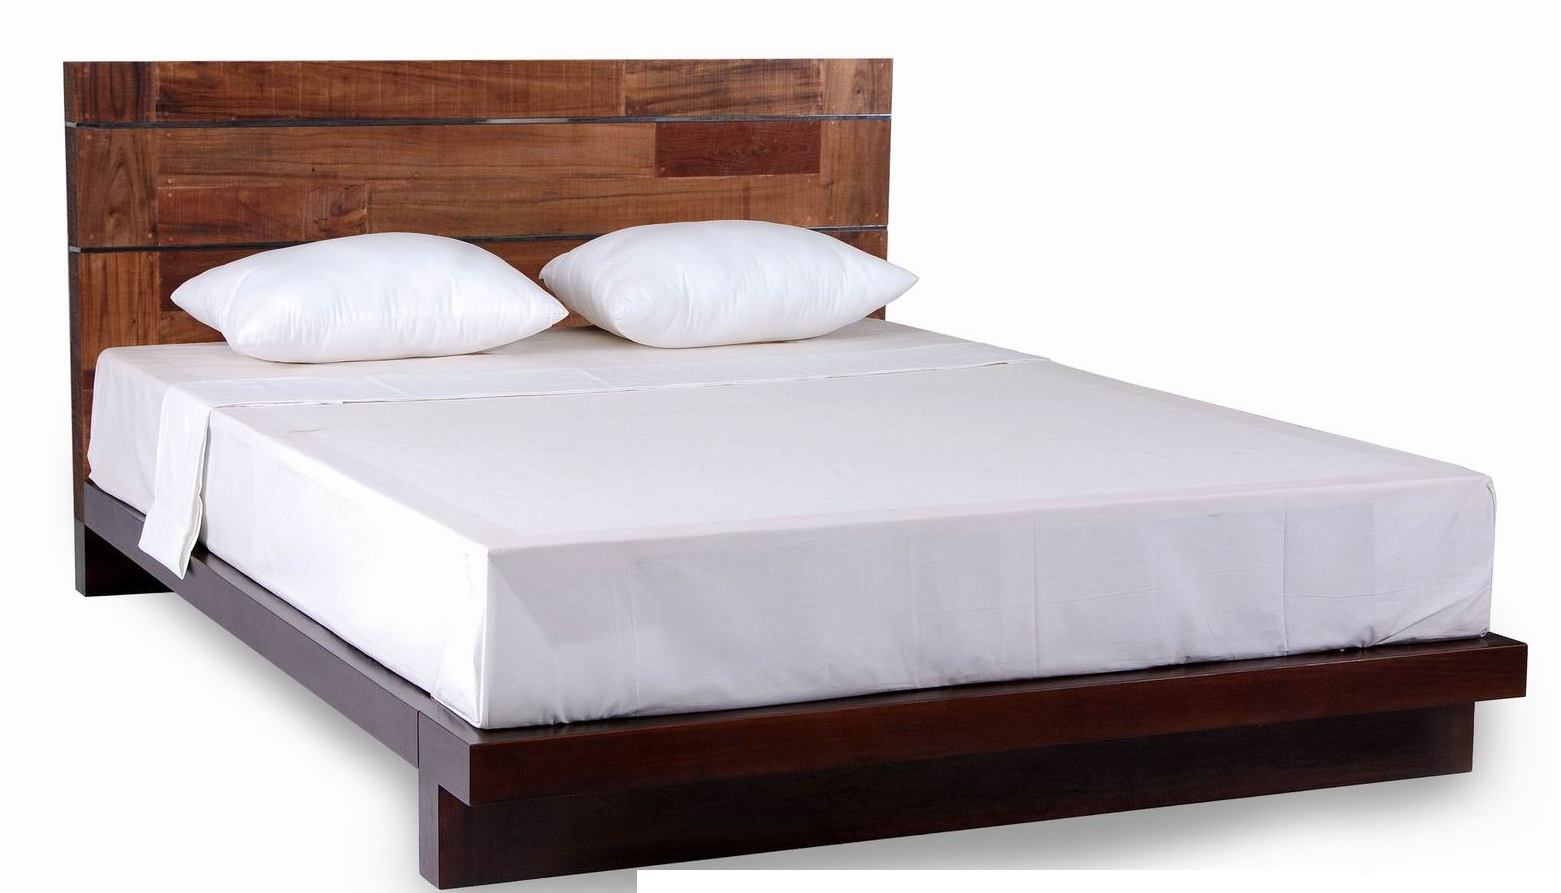 astounding modern furniture platform beds | Pin by Swagbot Creative on Reclaimed wood for Home decor ...